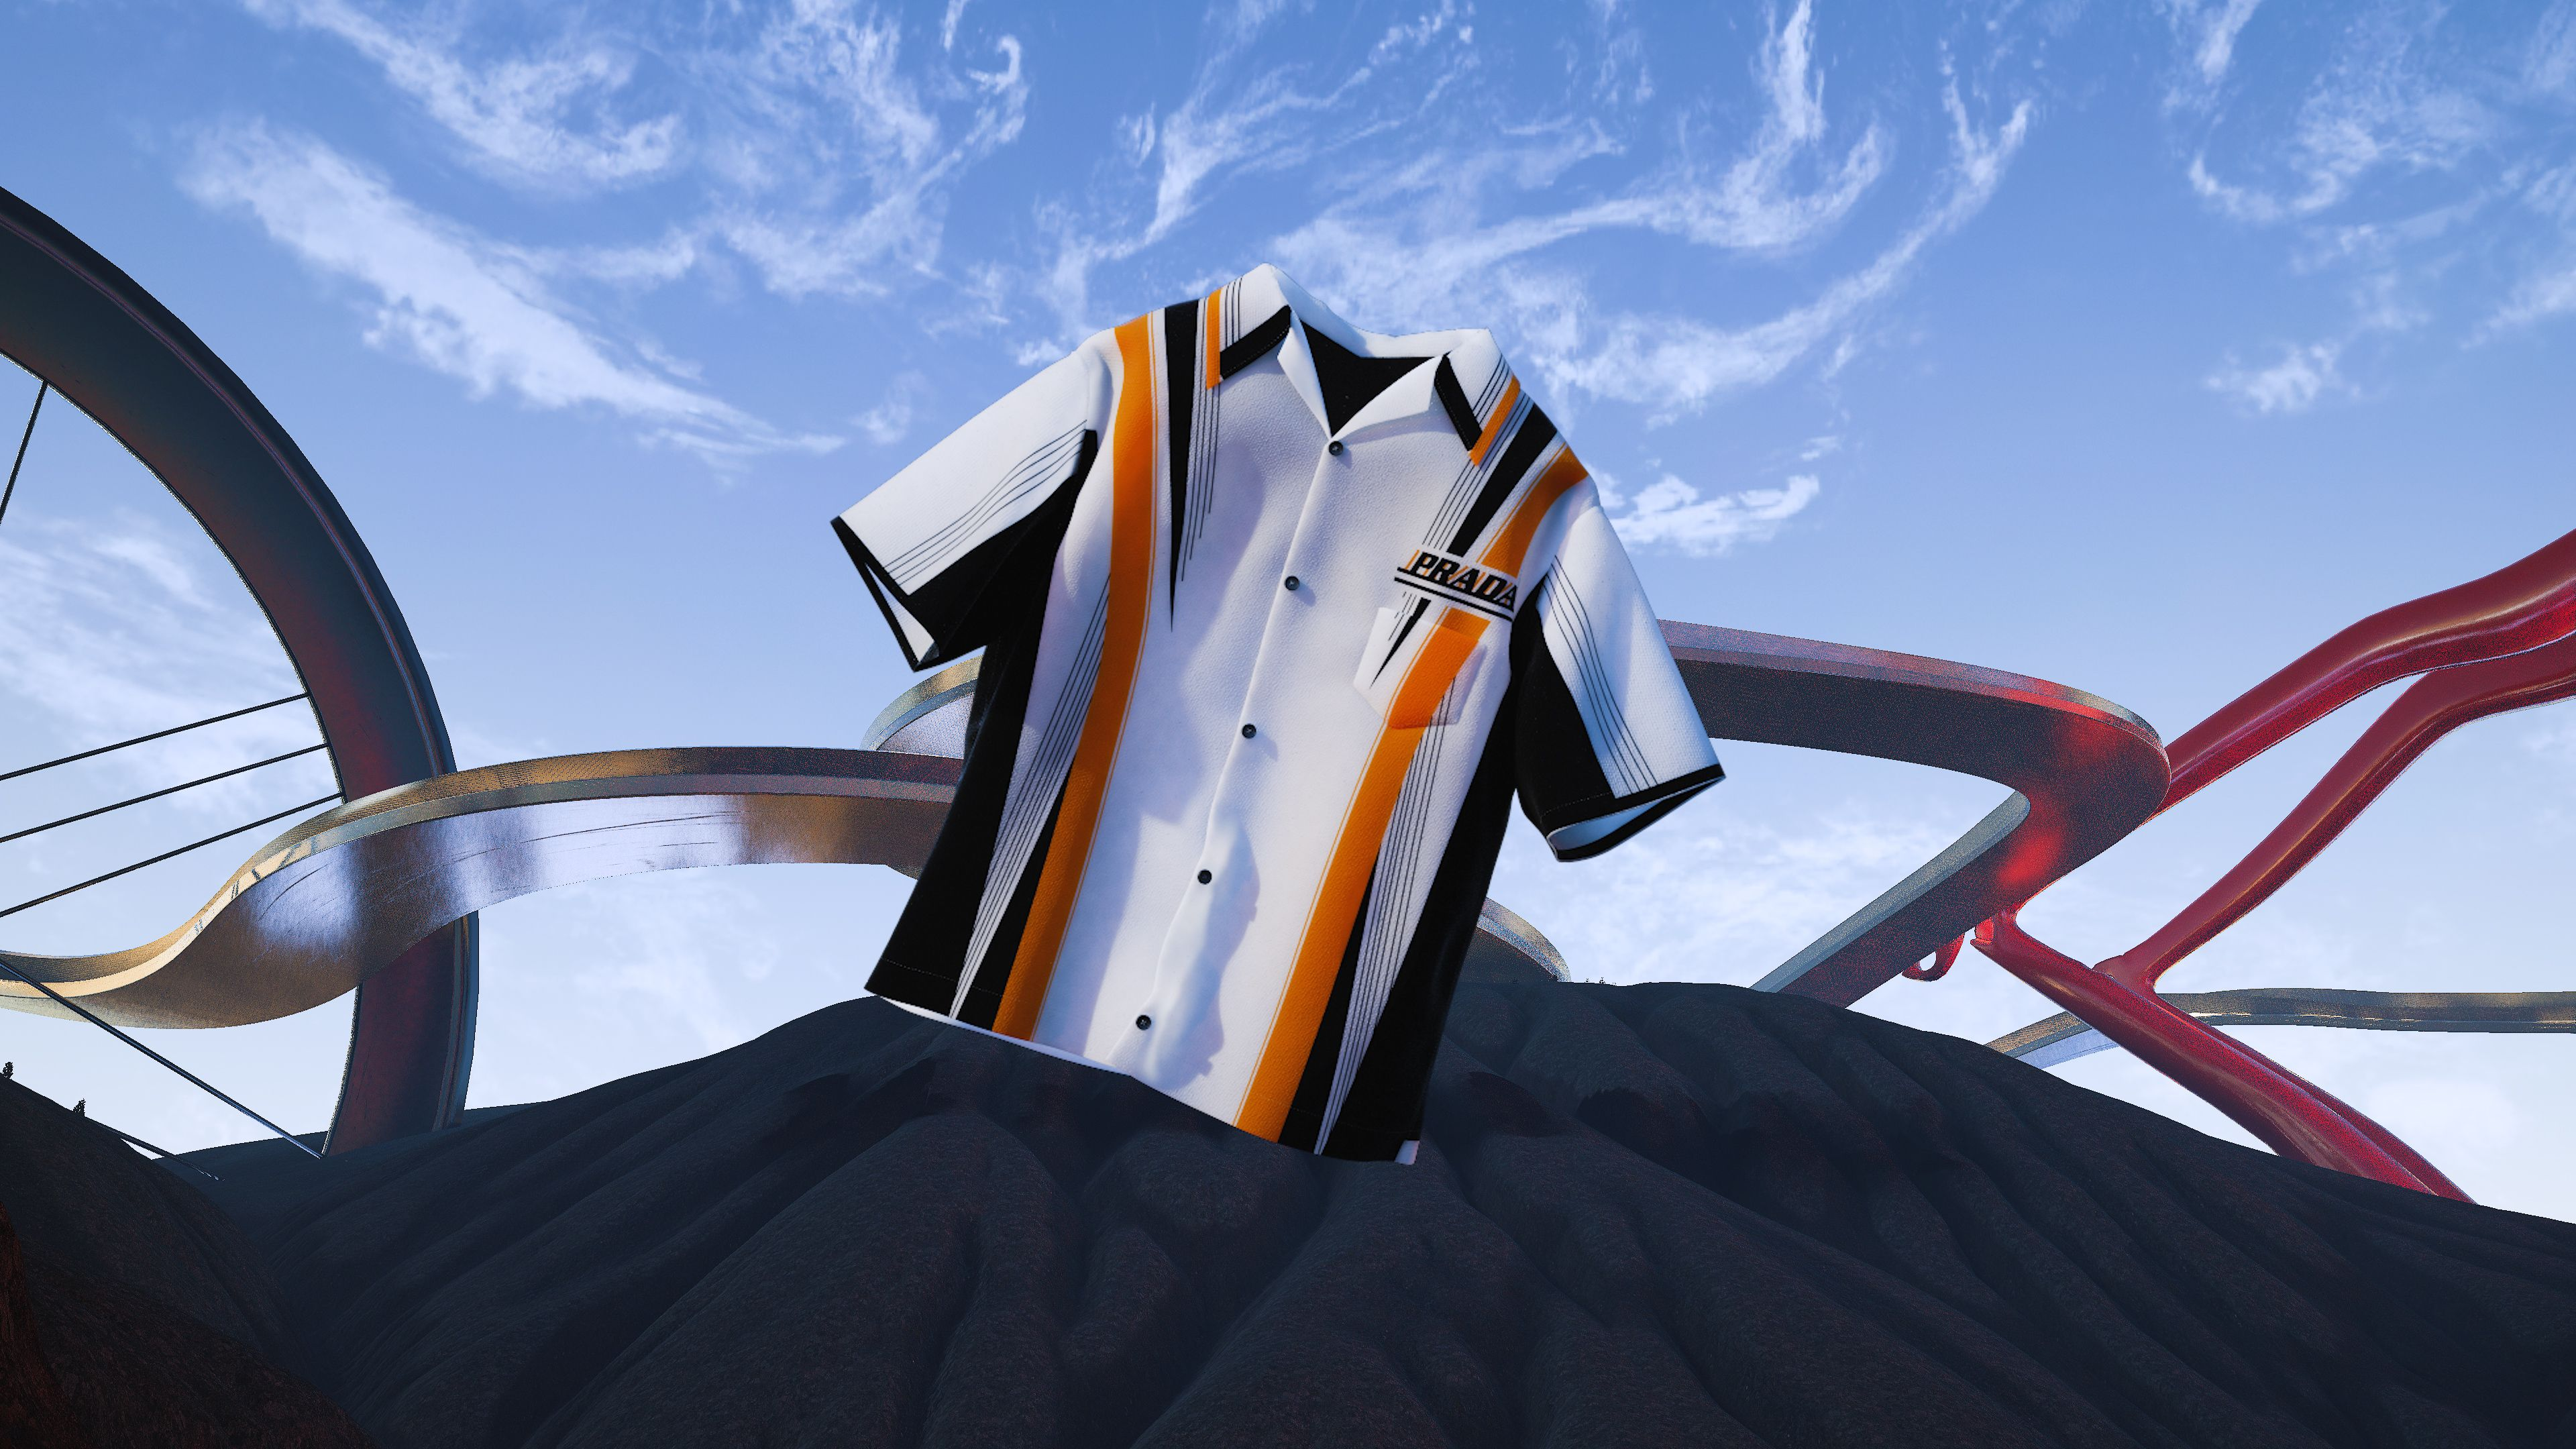 Prada Debuted Another Of The World's Most Collectible Shirts